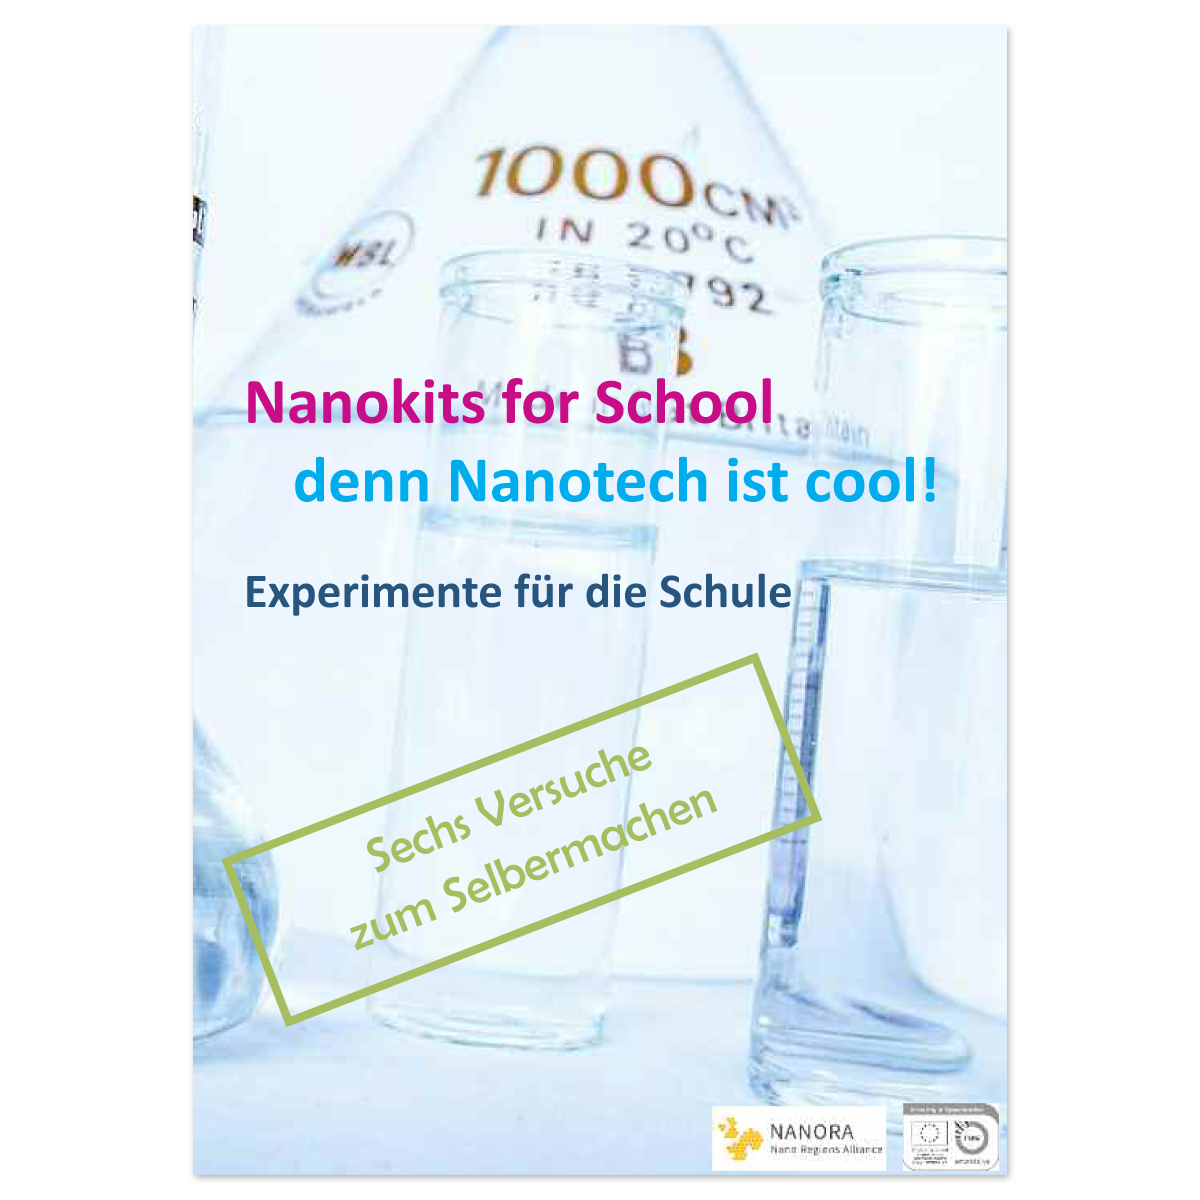 nanokits for school